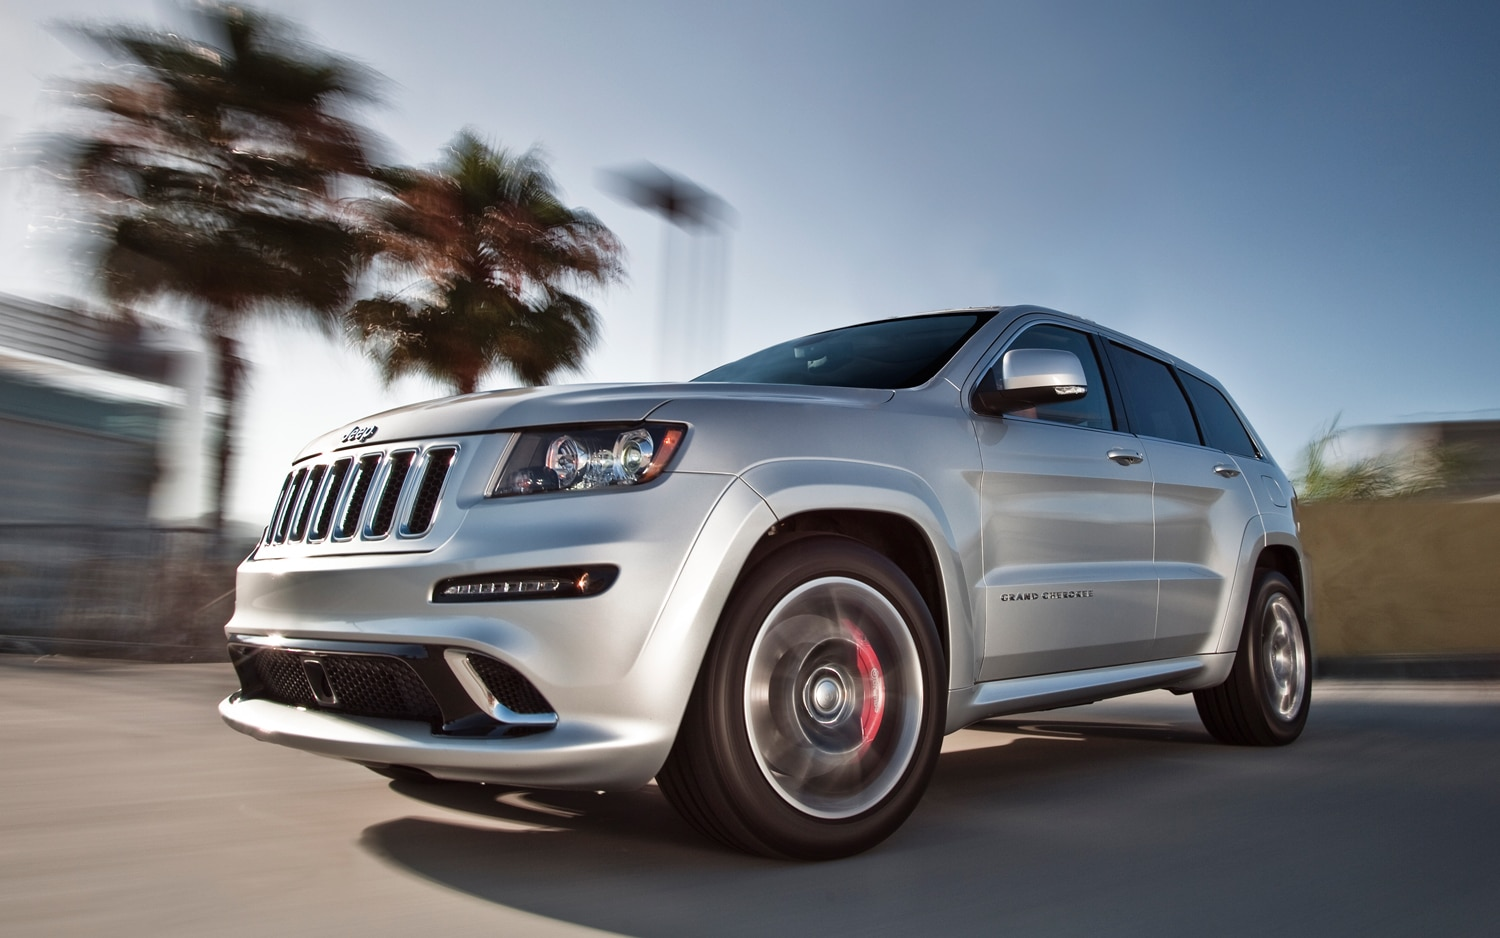 2012 Jeep Grand Cherokee SRT8 Front View1